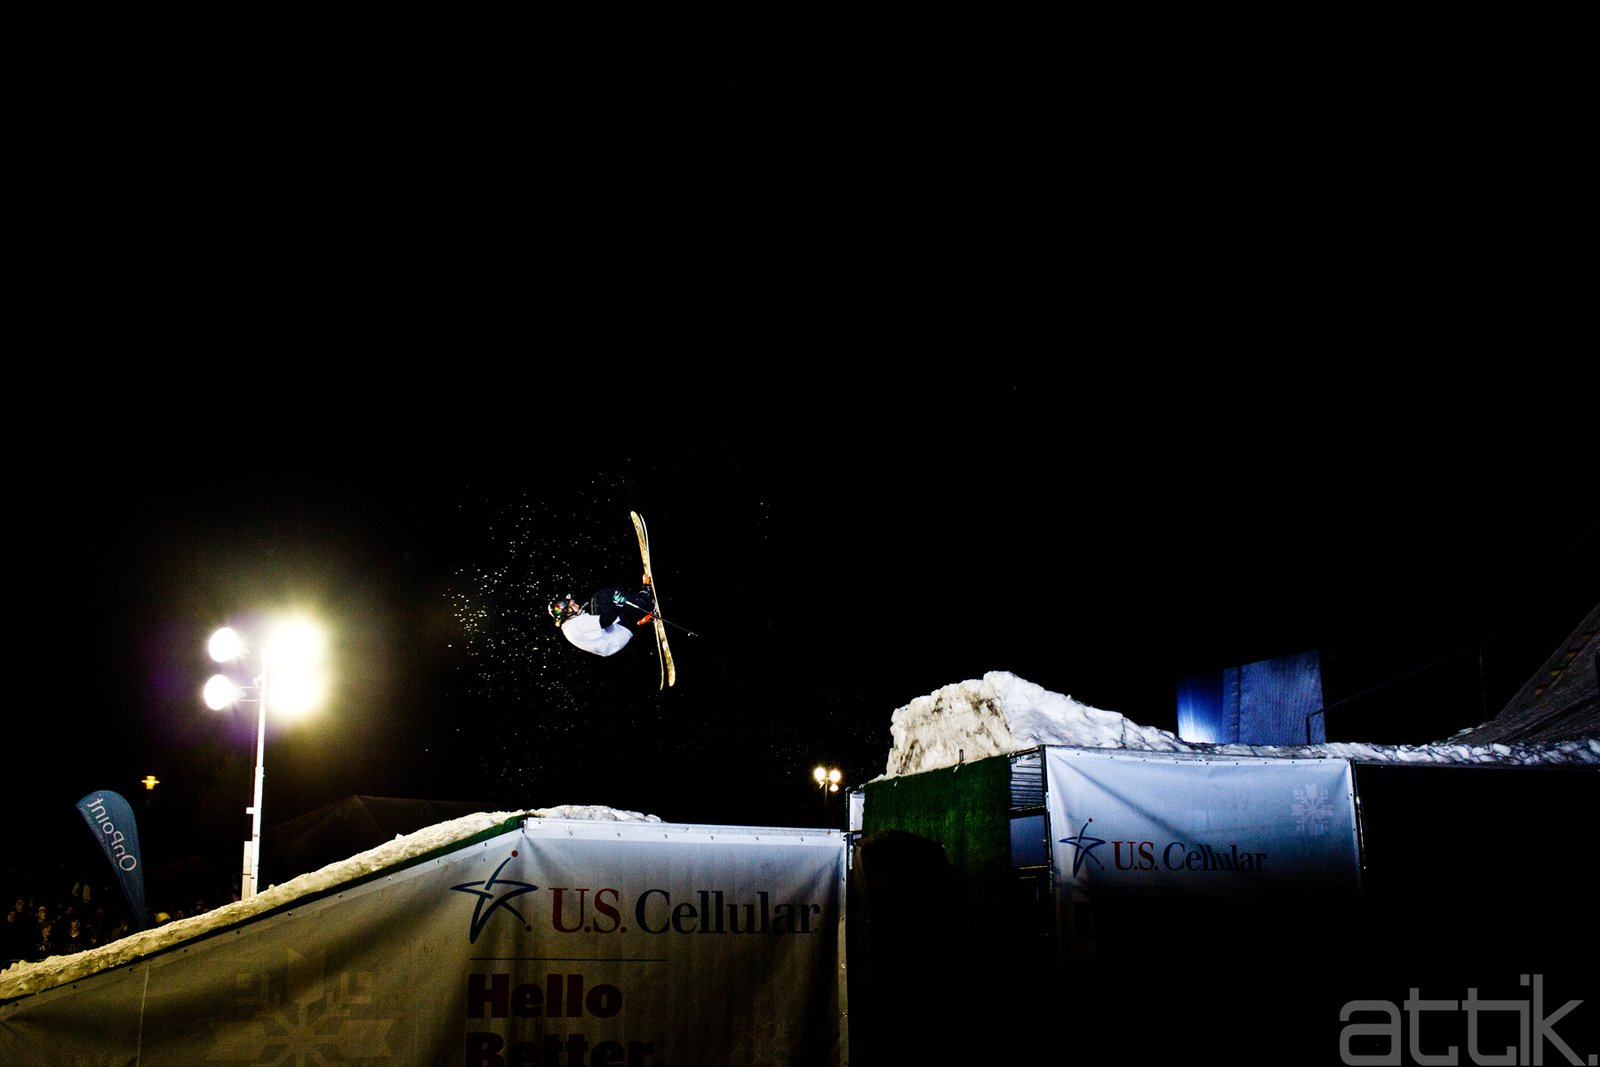 Switch Frontflip